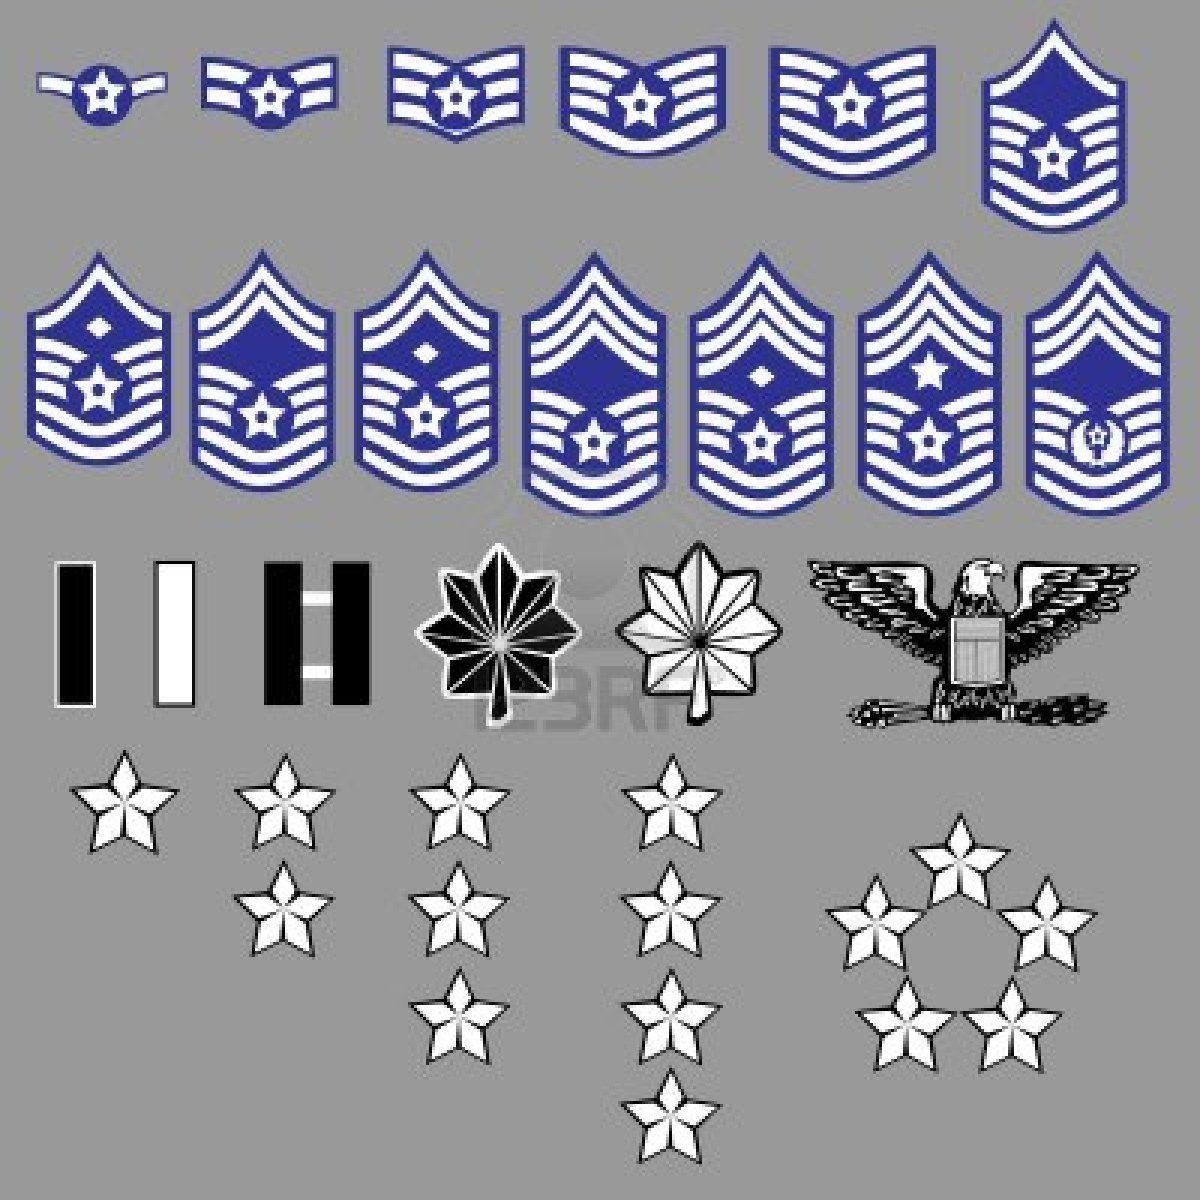 pictures of officer air force ranks yourfeb navy ranks